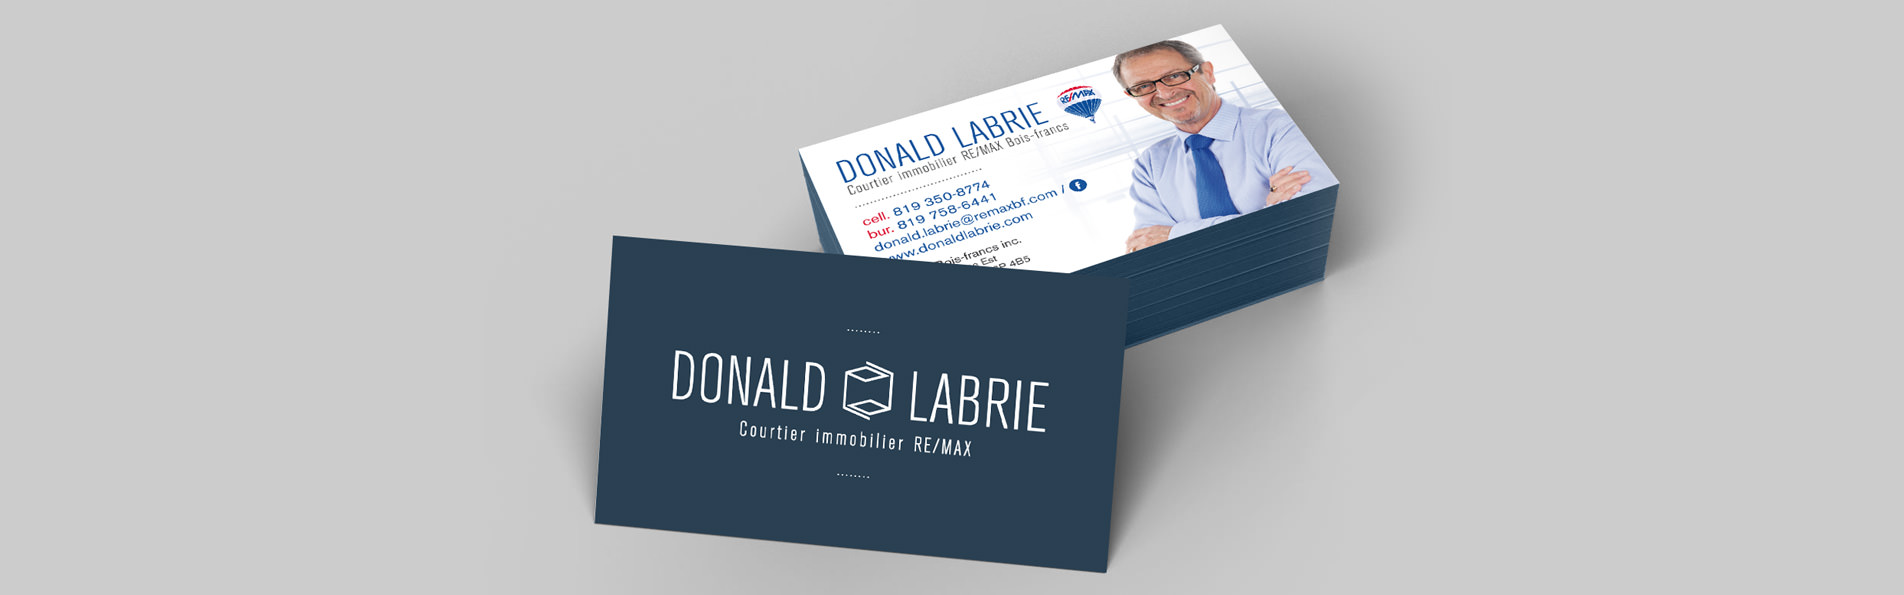 donald-labrie-02